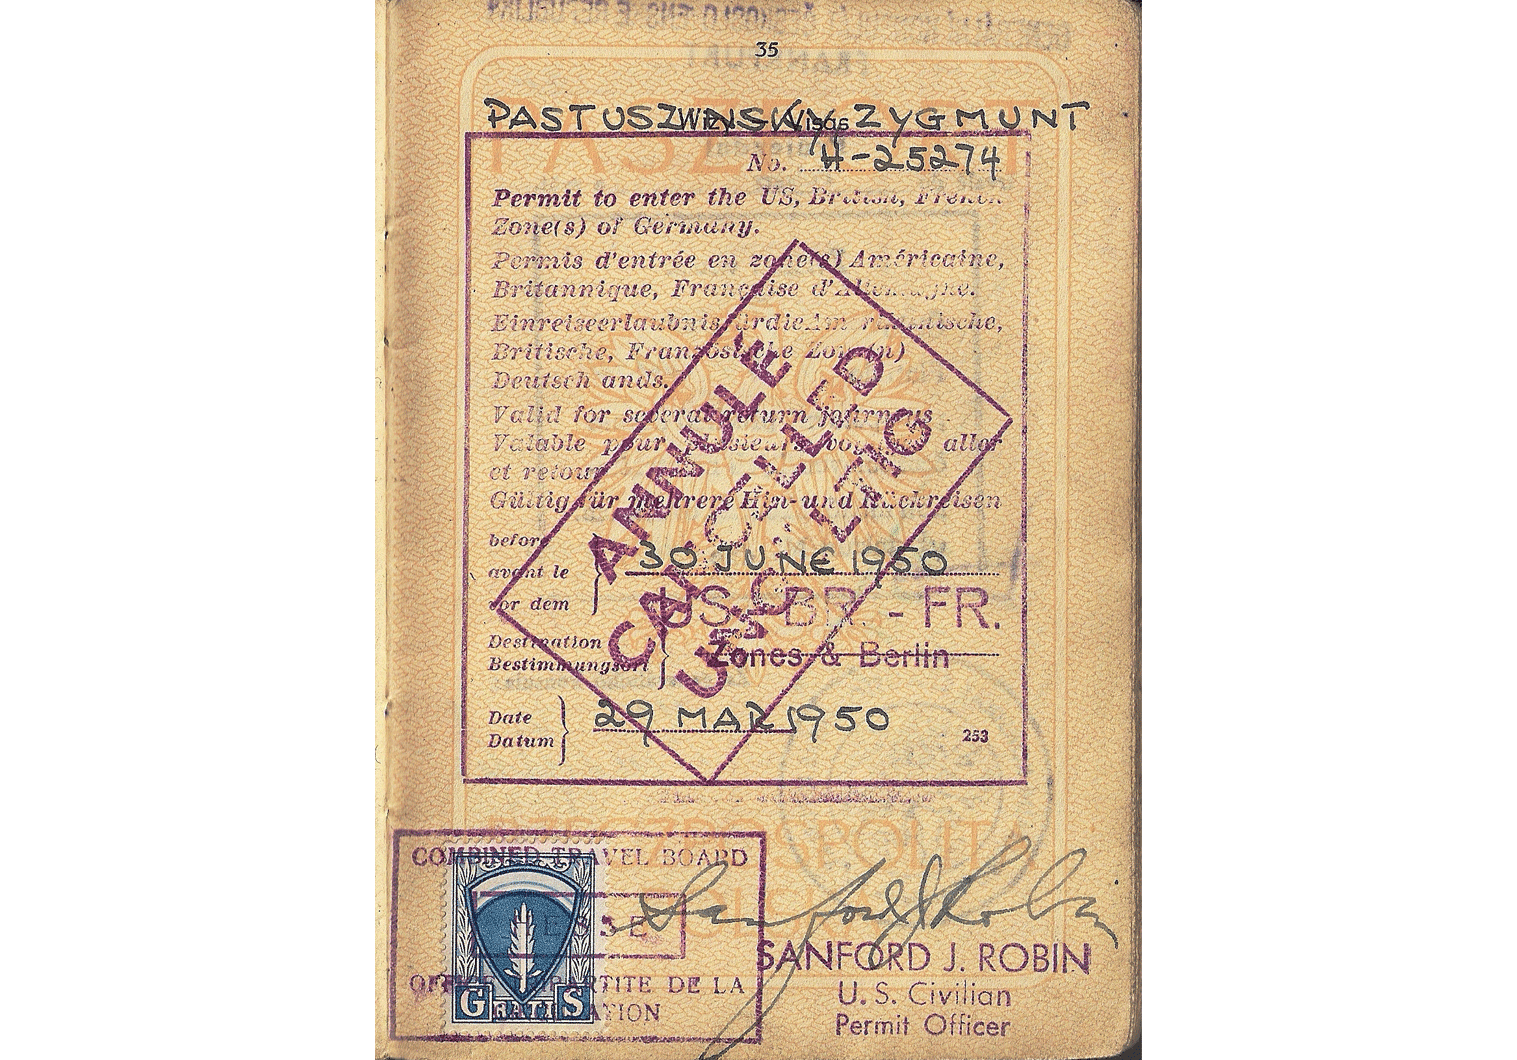 Allied Military Government visa